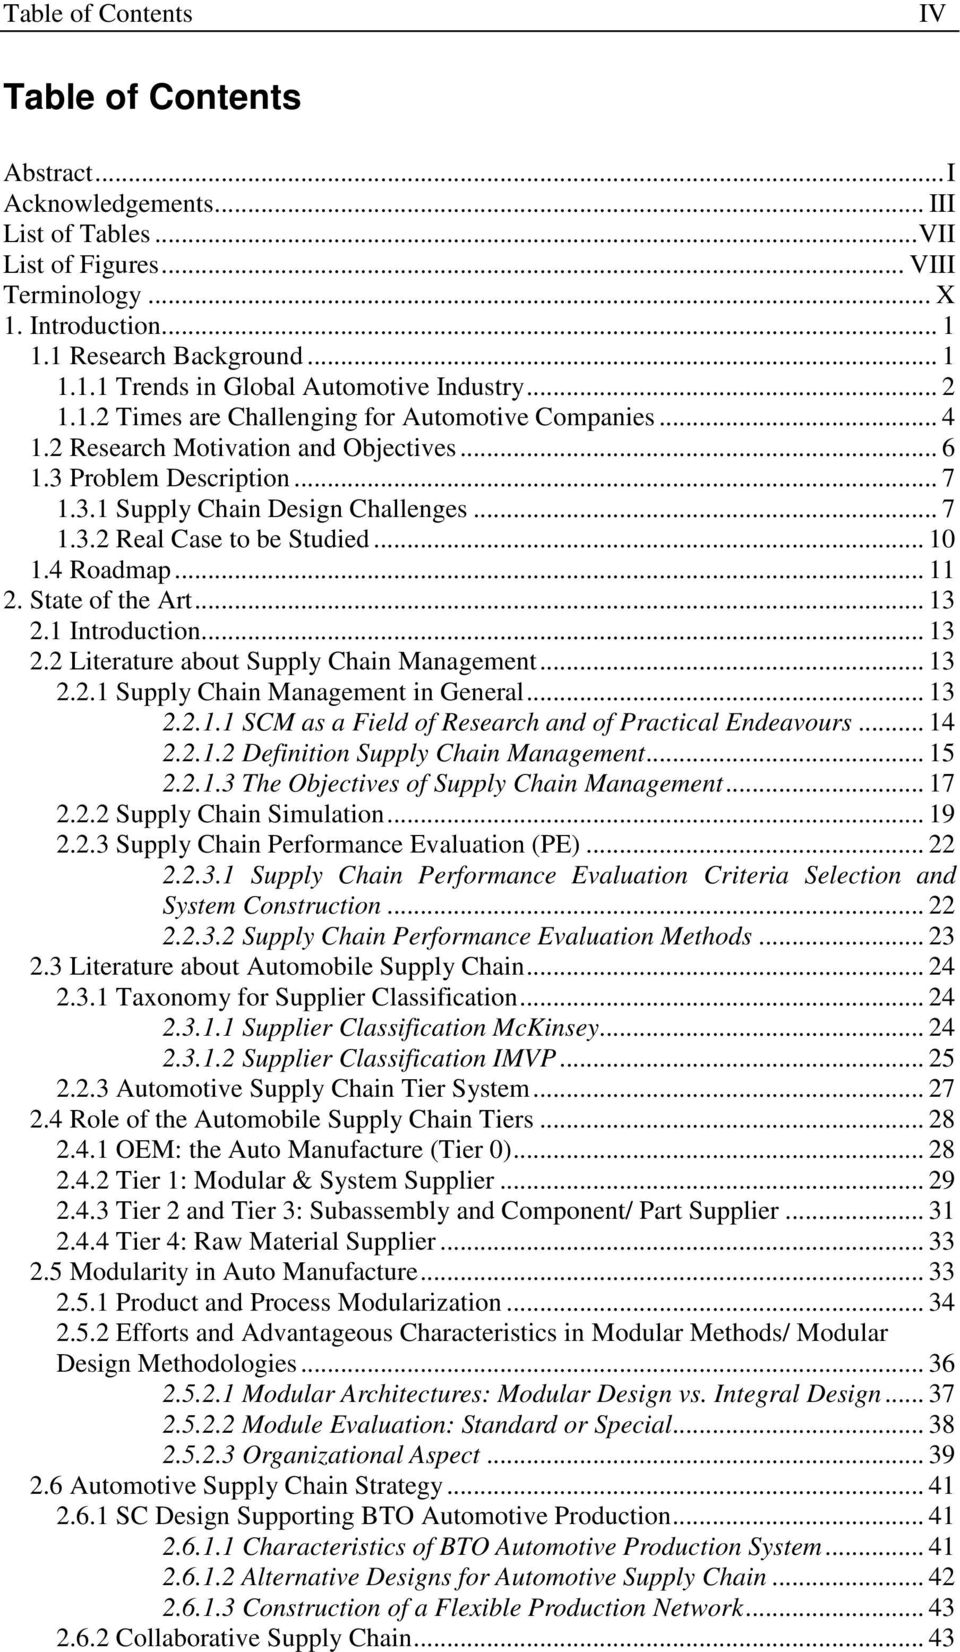 .. 10 1.4 Roadmap... 11 2. State of the Art... 13 2.1 Introduction... 13 2.2 Literature about Supply Chain Management... 13 2.2.1 Supply Chain Management in General... 13 2.2.1.1 SCM as a Field of Research and of Practical Endeavours.